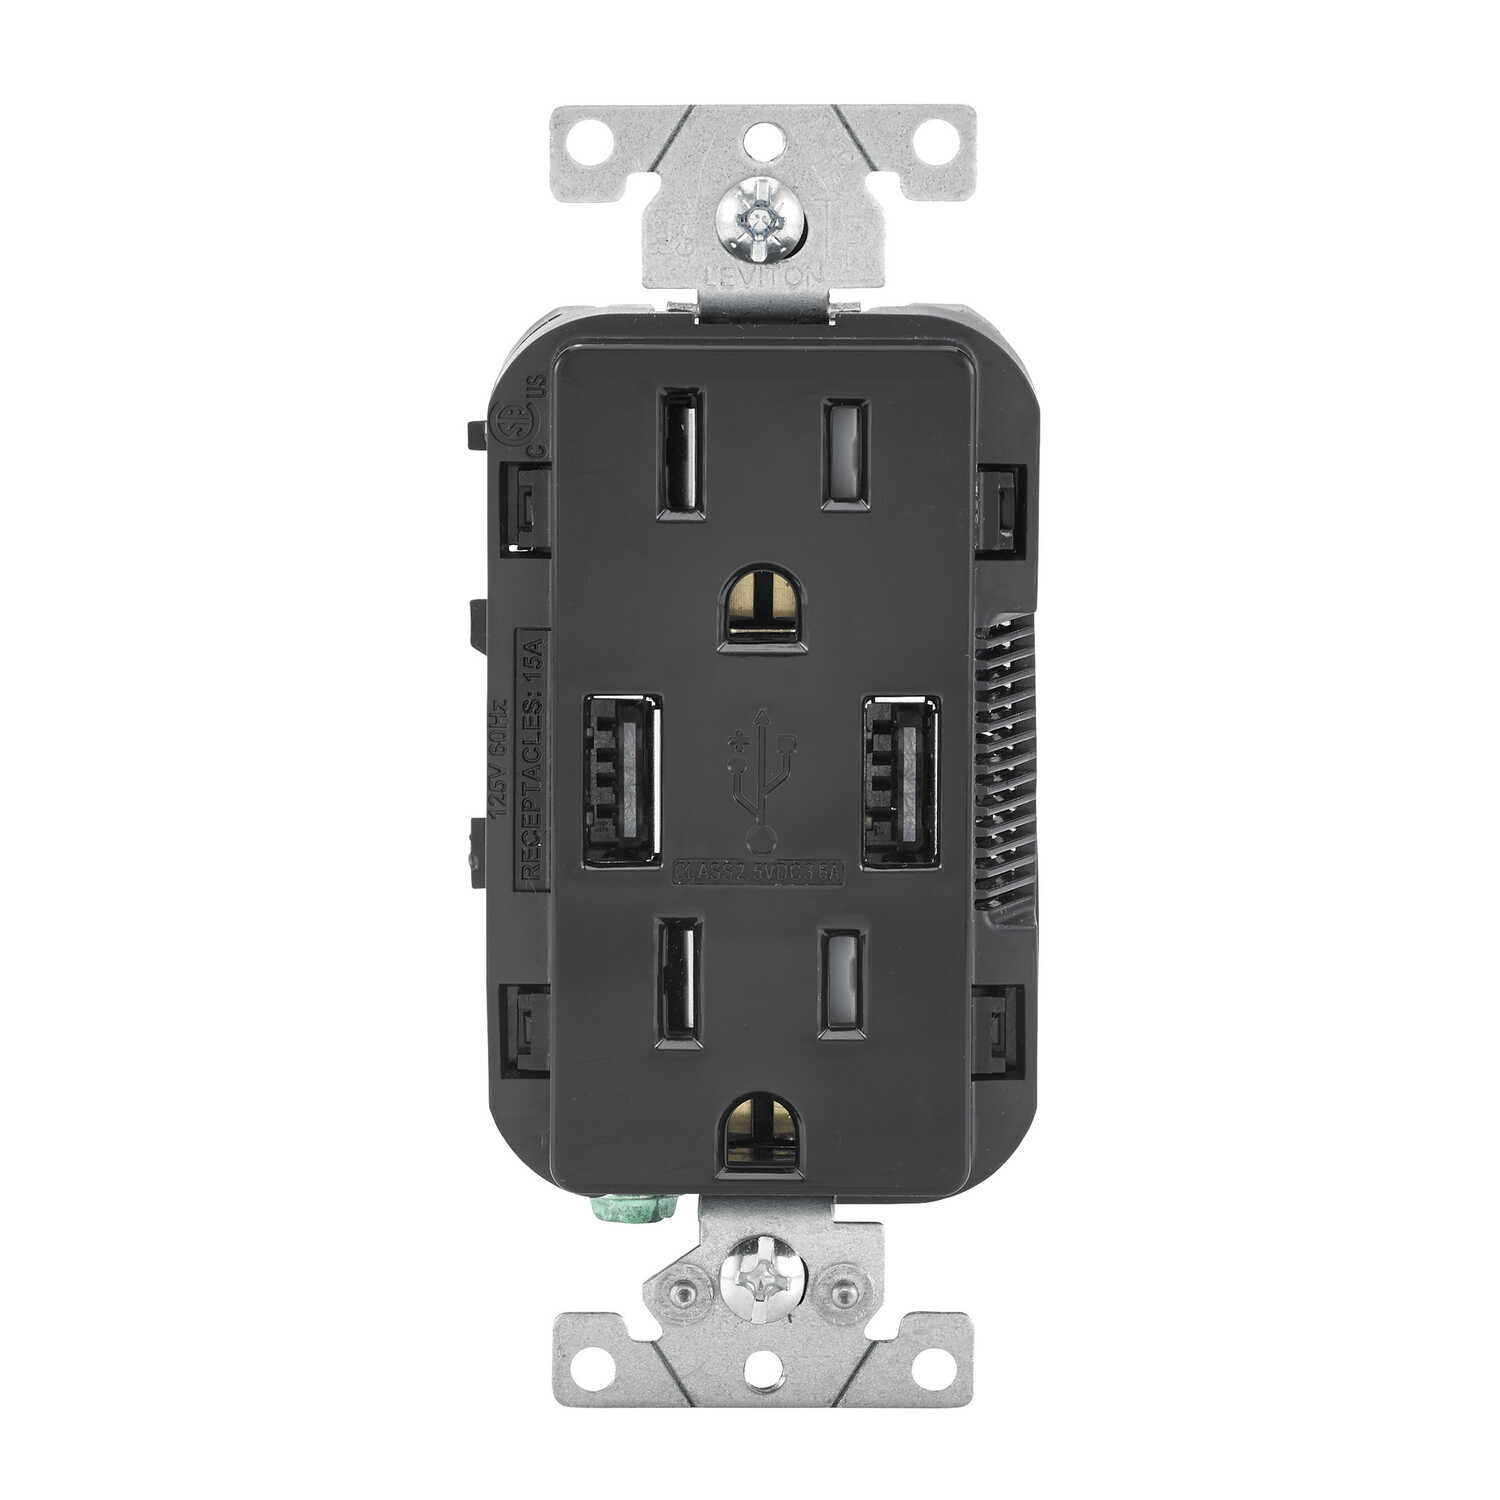 Leviton  Decora  15 amps 125 volt Black  Outlet and USB Charger  5-15R  1 pk